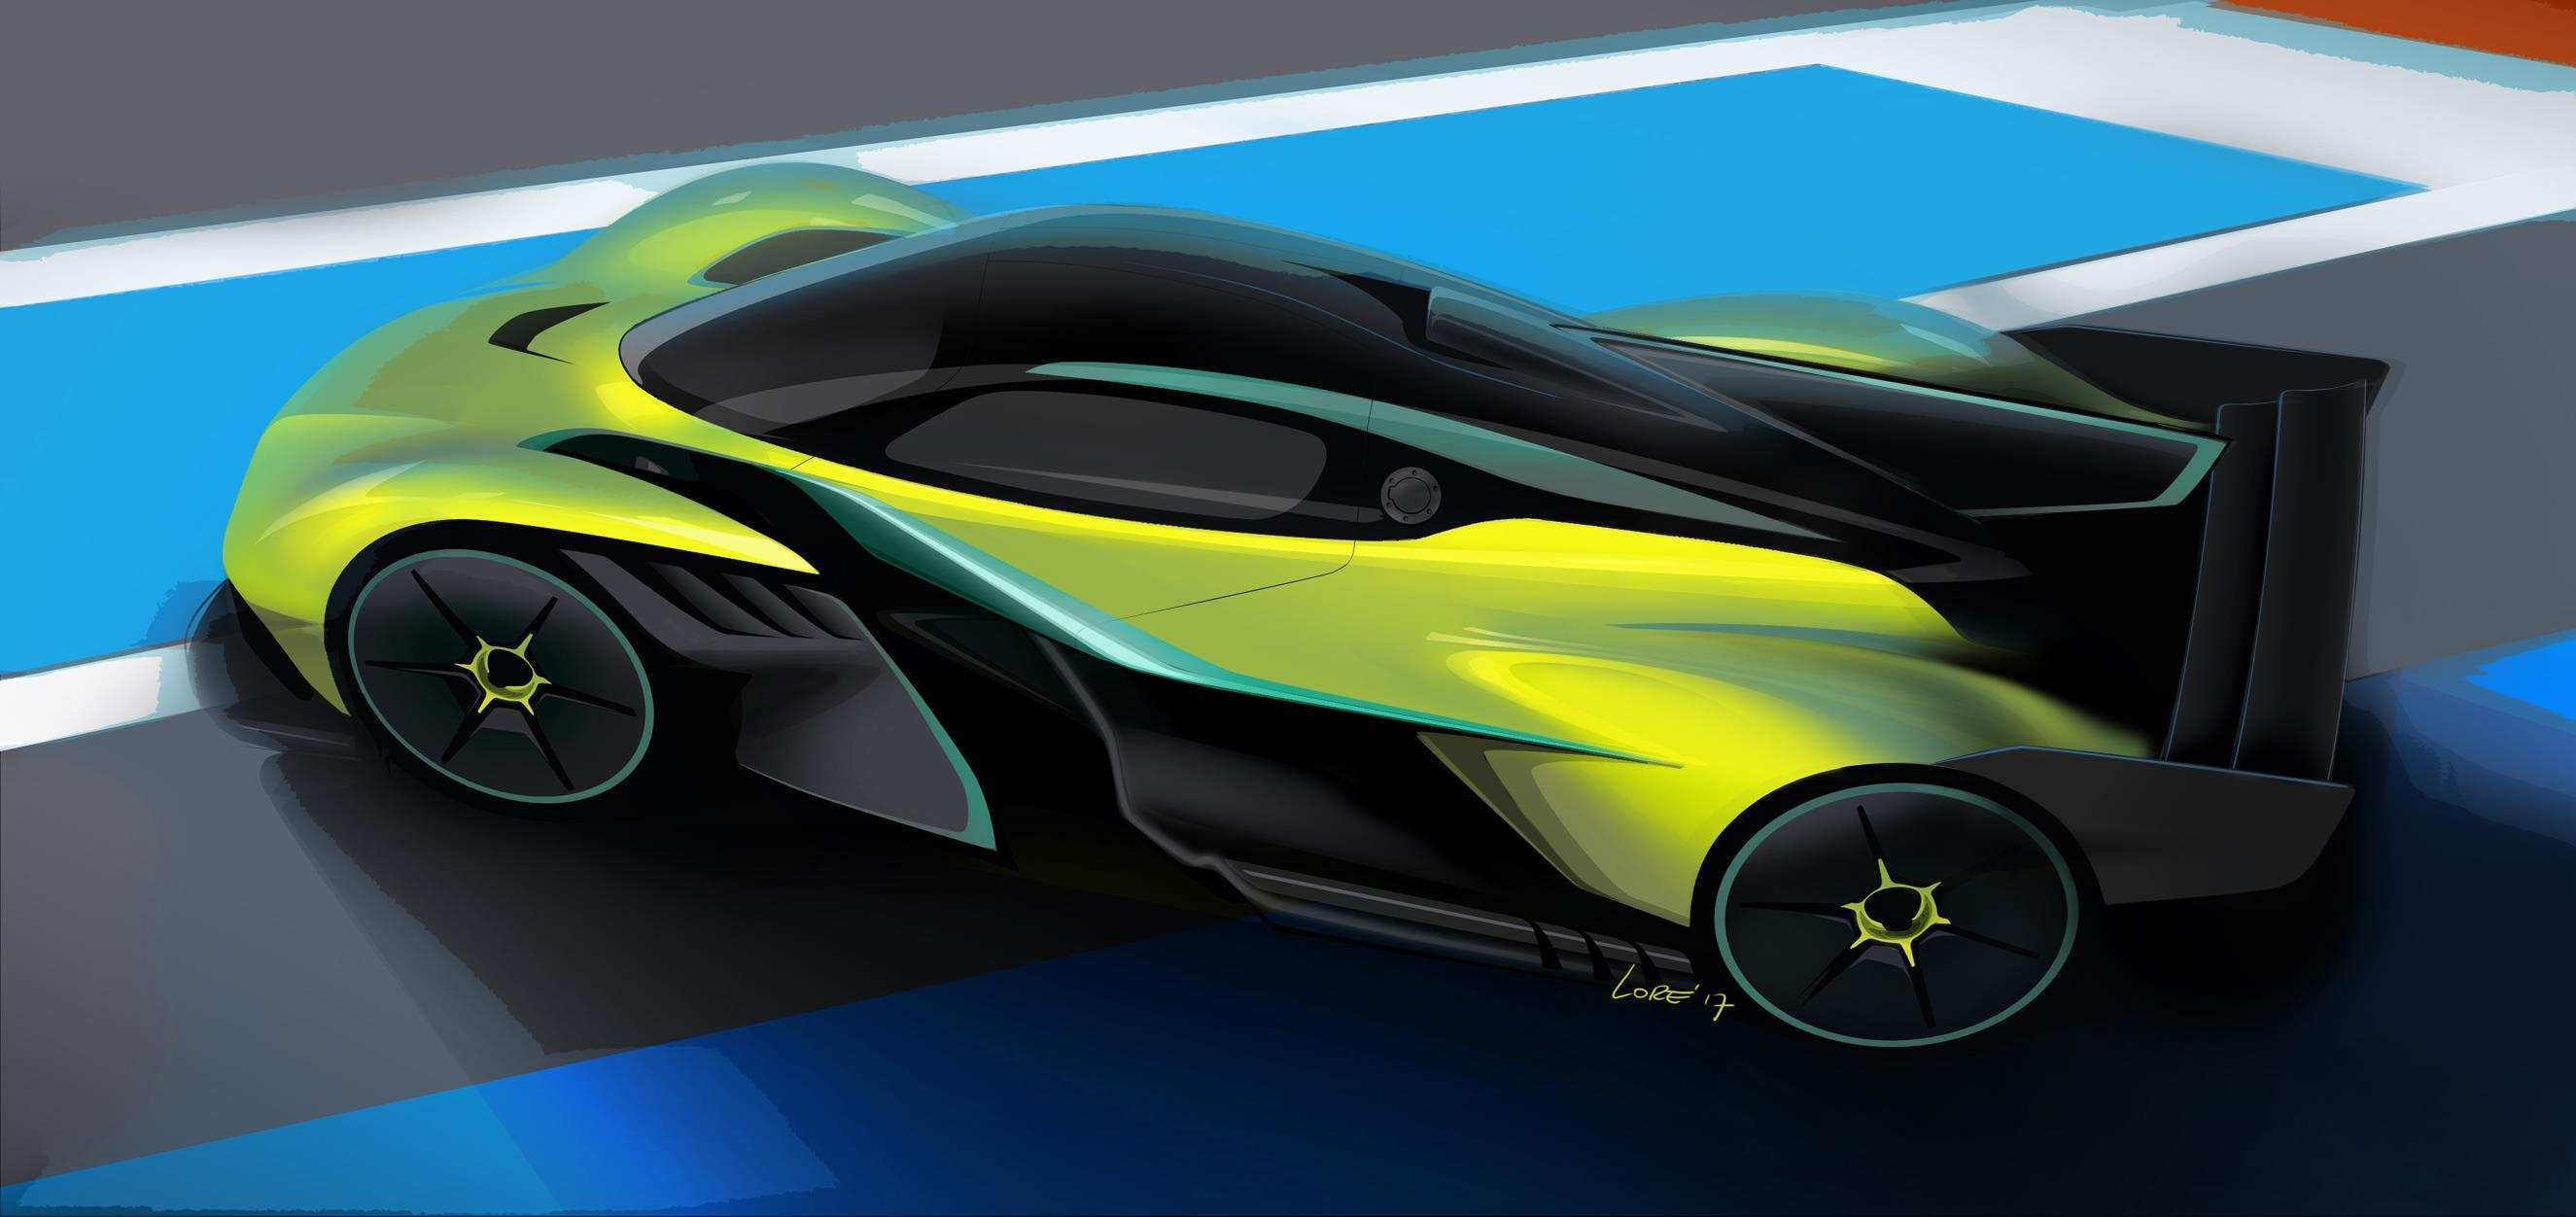 65 Great 2020 Aston Martin Valkyrie Exterior and Interior for 2020 Aston Martin Valkyrie